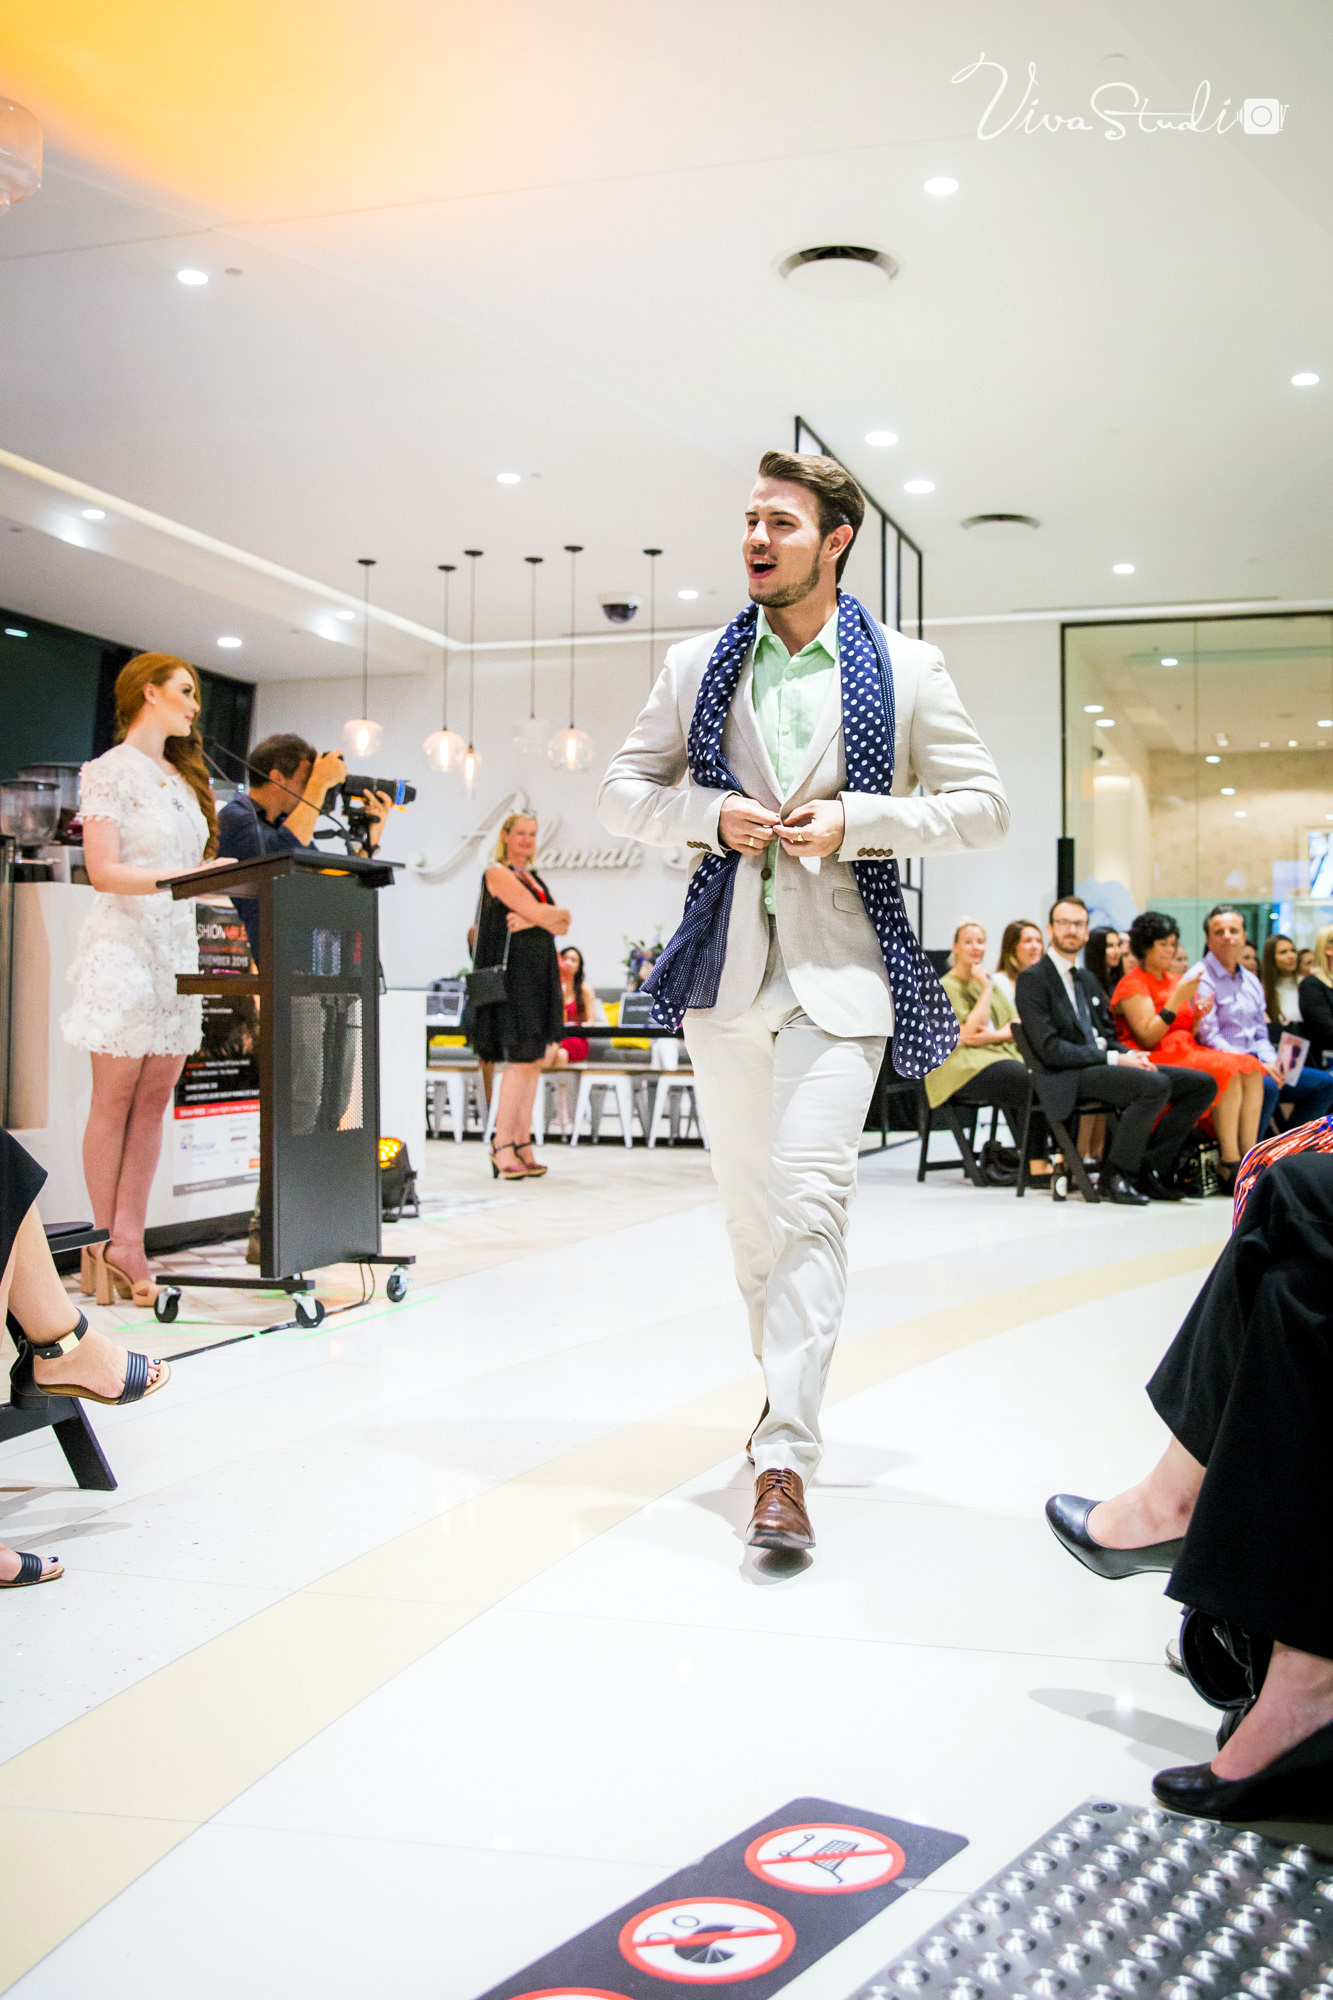 VivaStudio_Design_Photograpphy_Brisbane_Event_Fashionable_20151105_0162